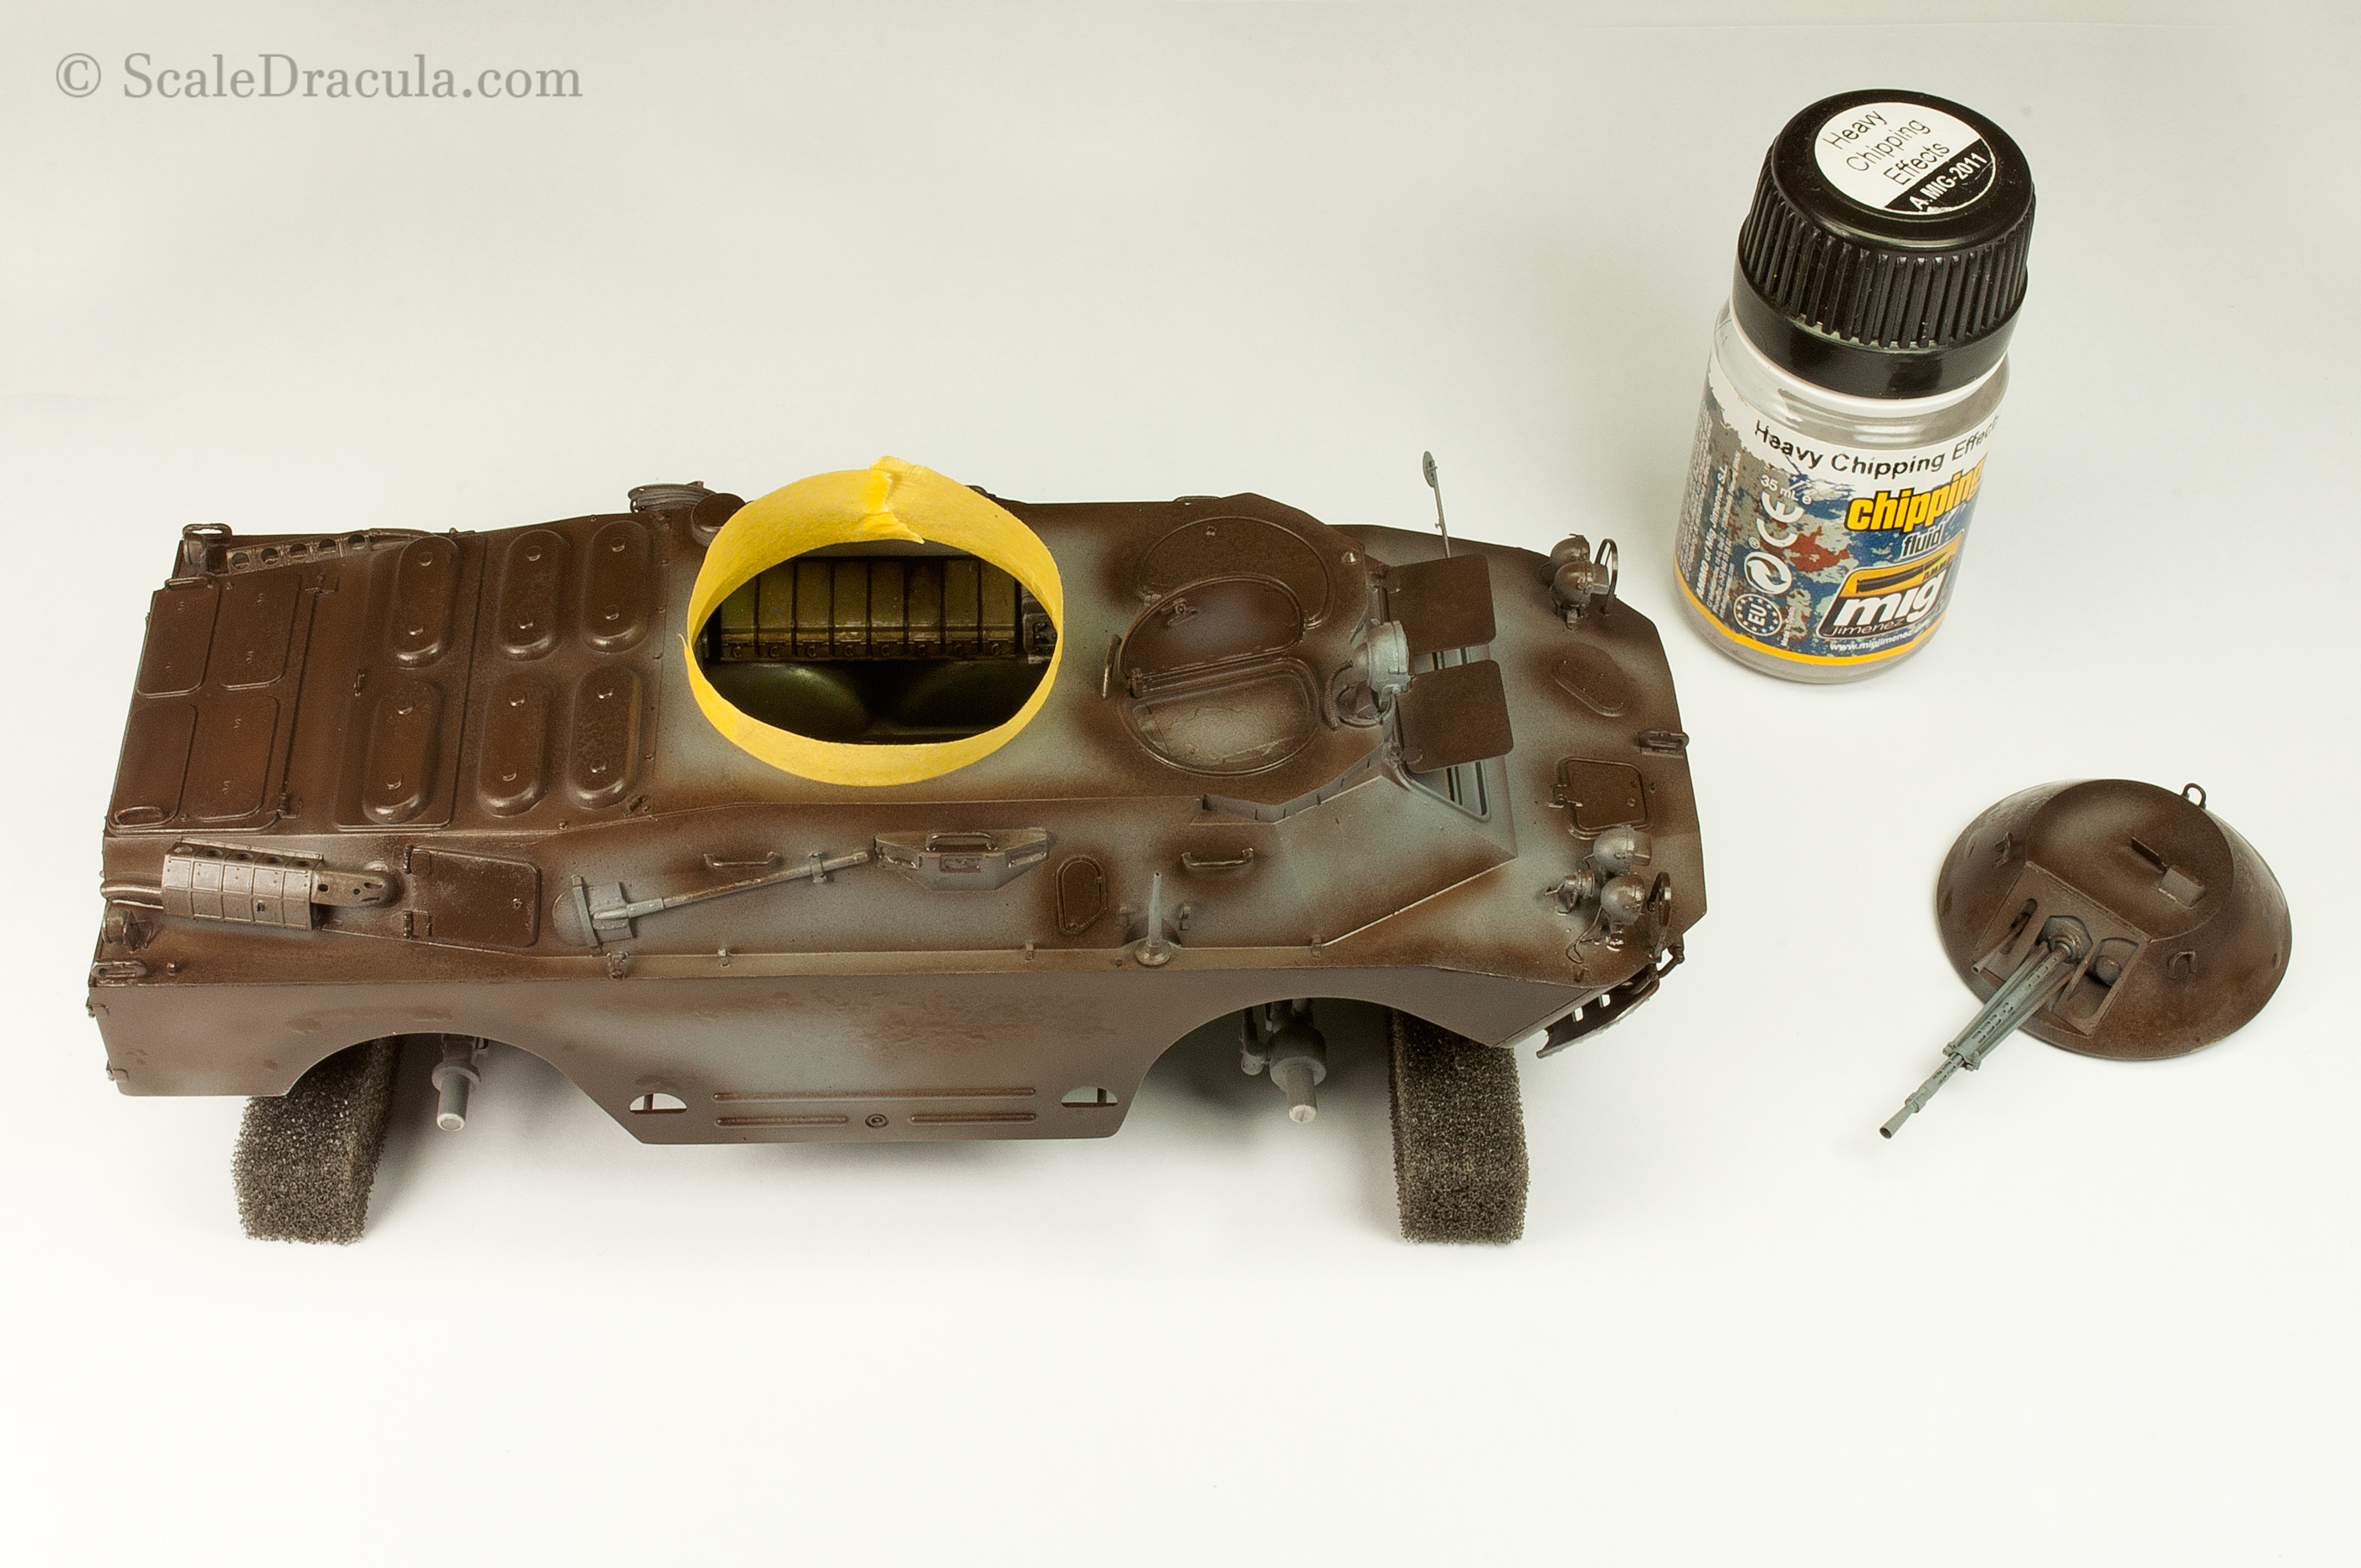 Layer of chipping fluid, BRDM-2 by Trumpeter